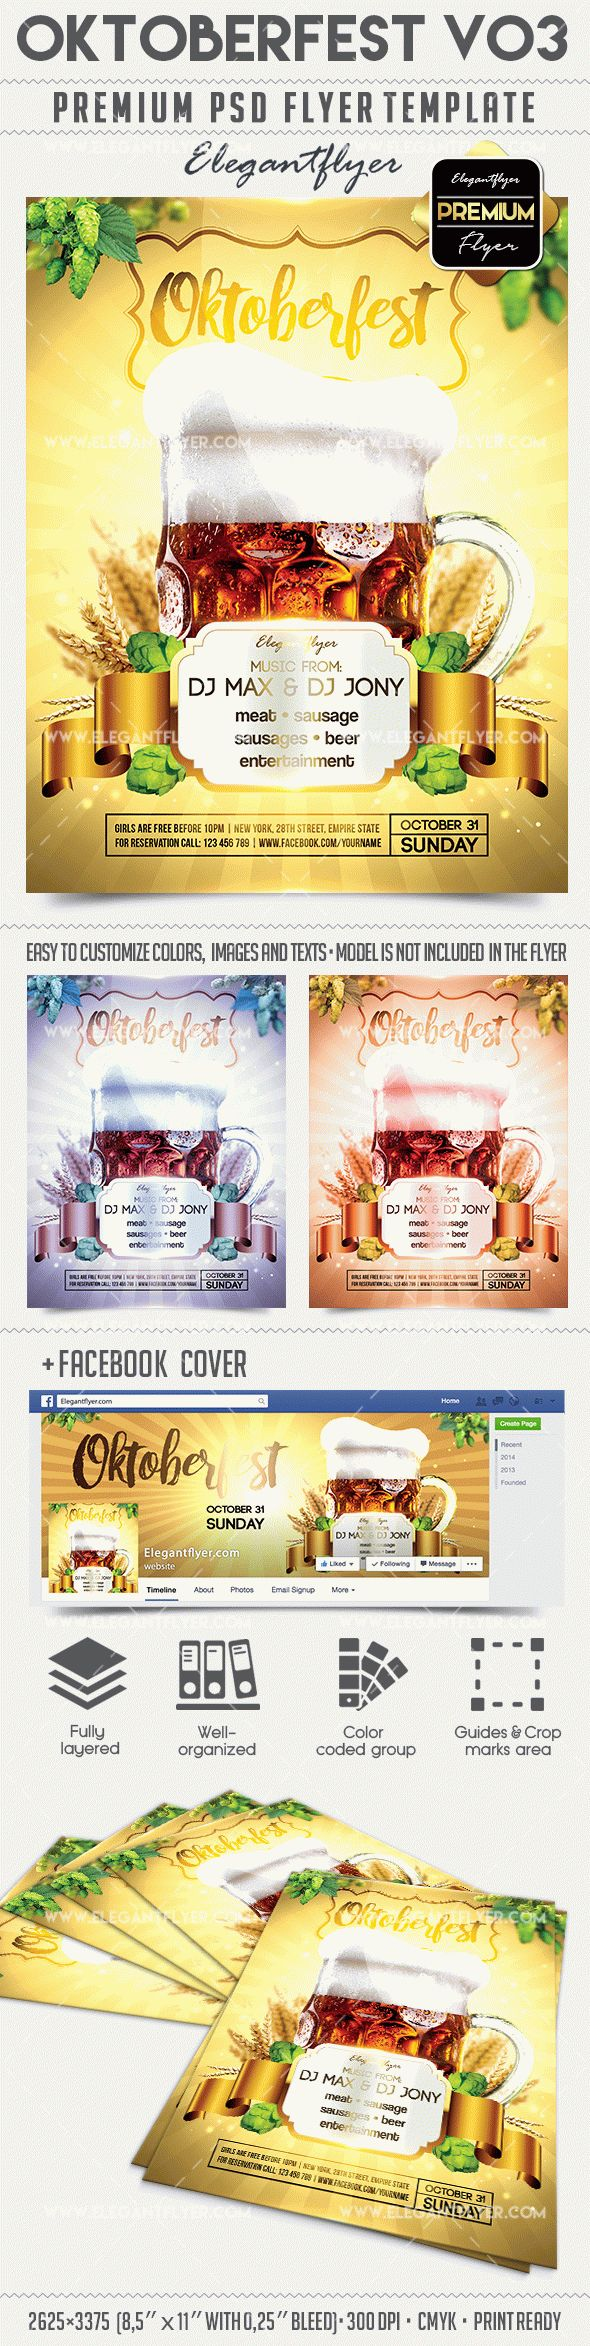 Oktoberfest V03 – Flyer PSD Template + Facebook Cover